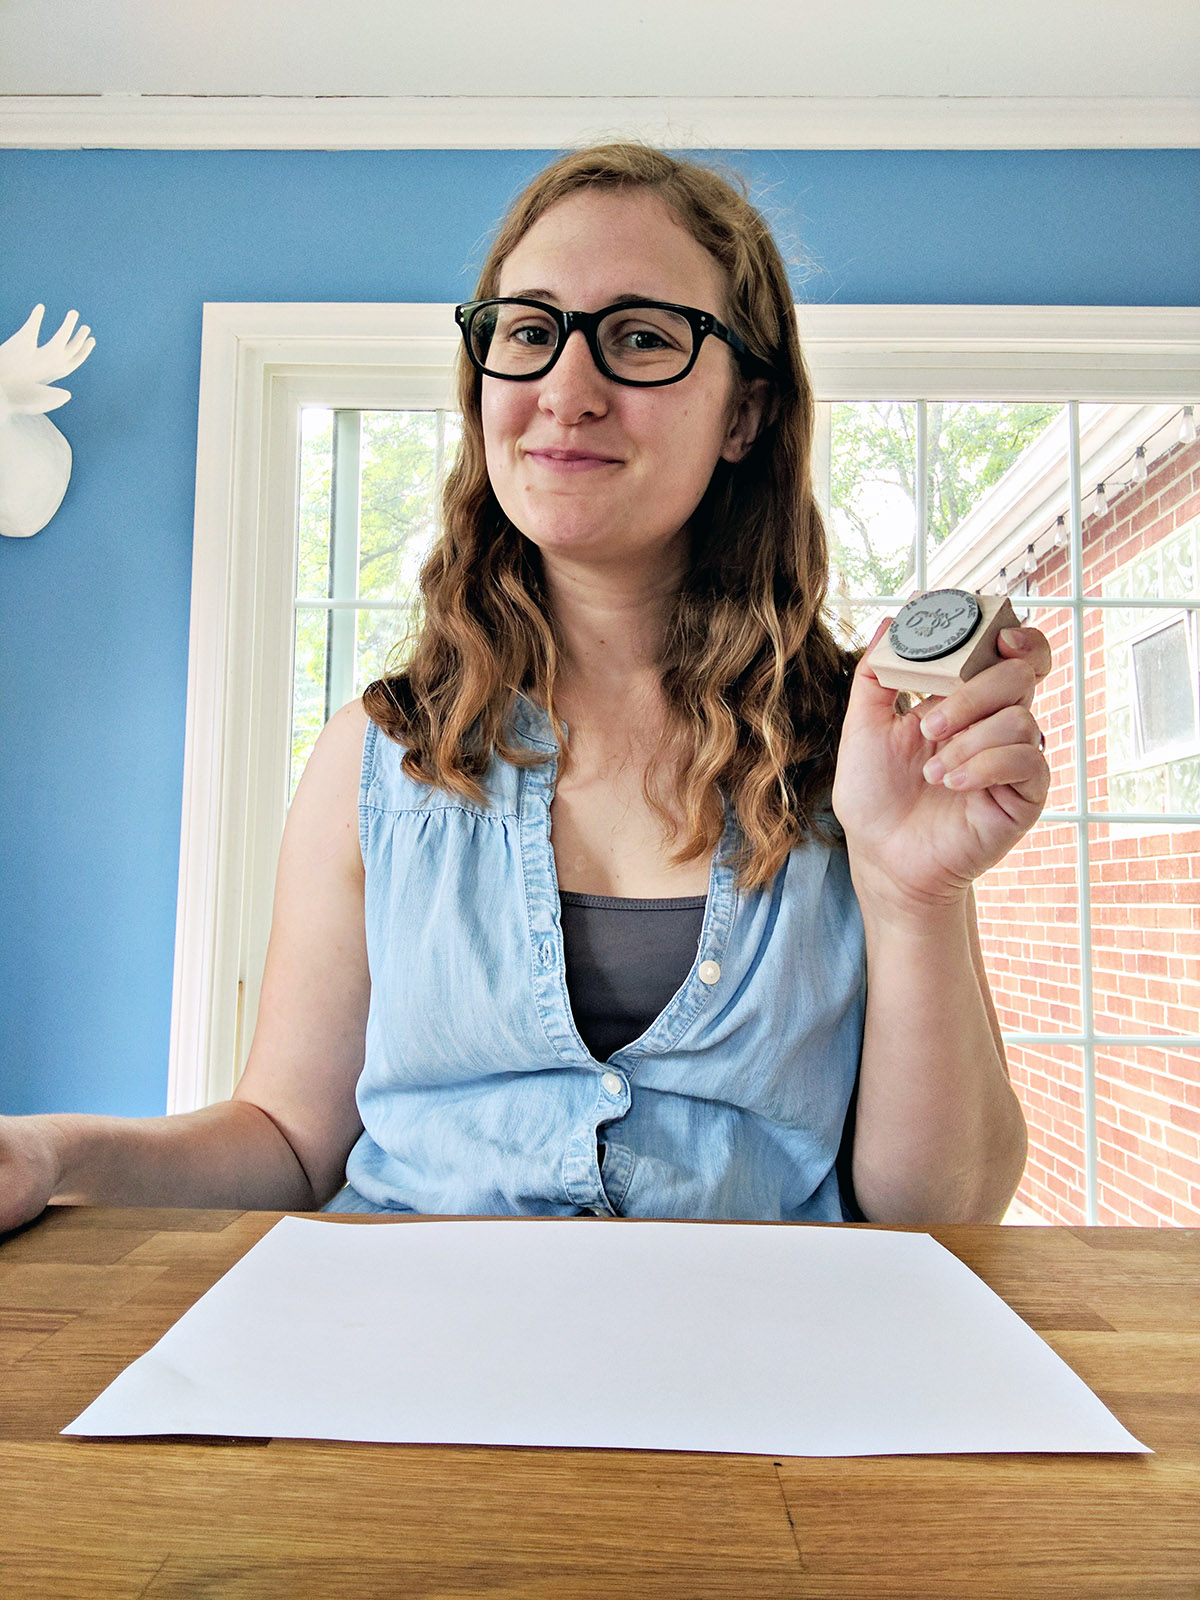 How to use a rubber stamp correctly